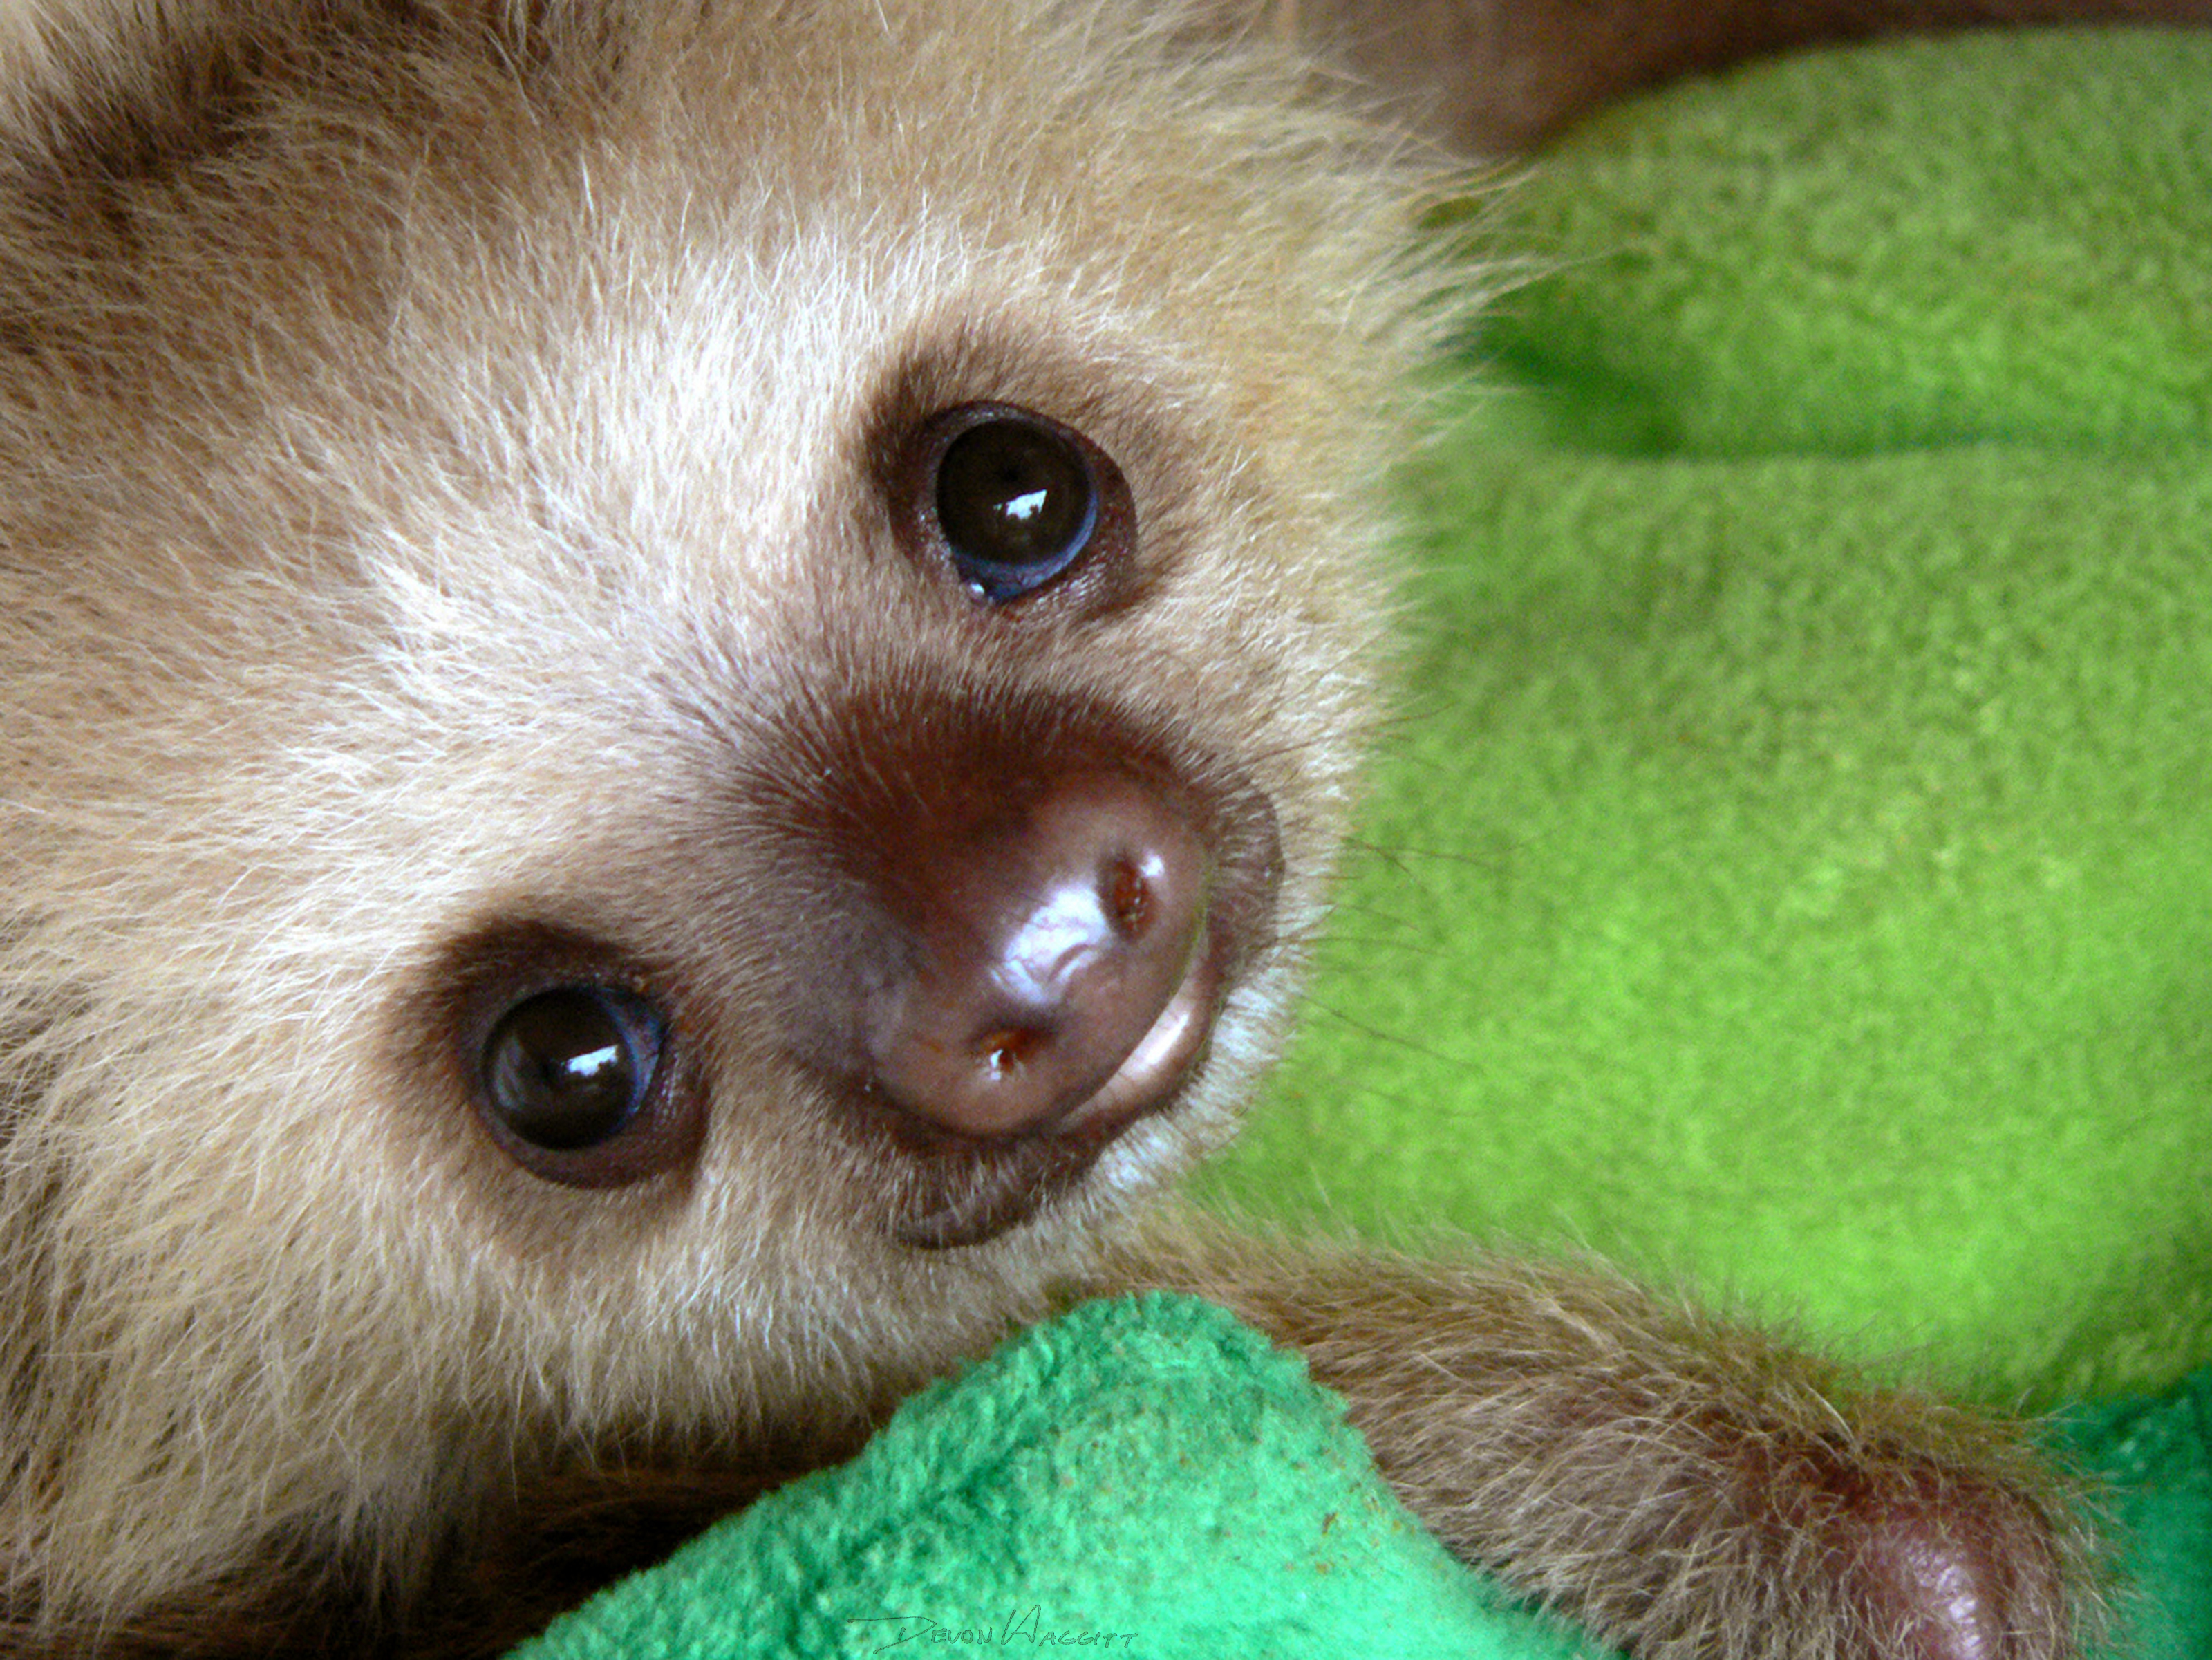 WATCH > Kristen Bell's Funny Sloth Footage: Hilarious Or Ridiculous Wallpaper